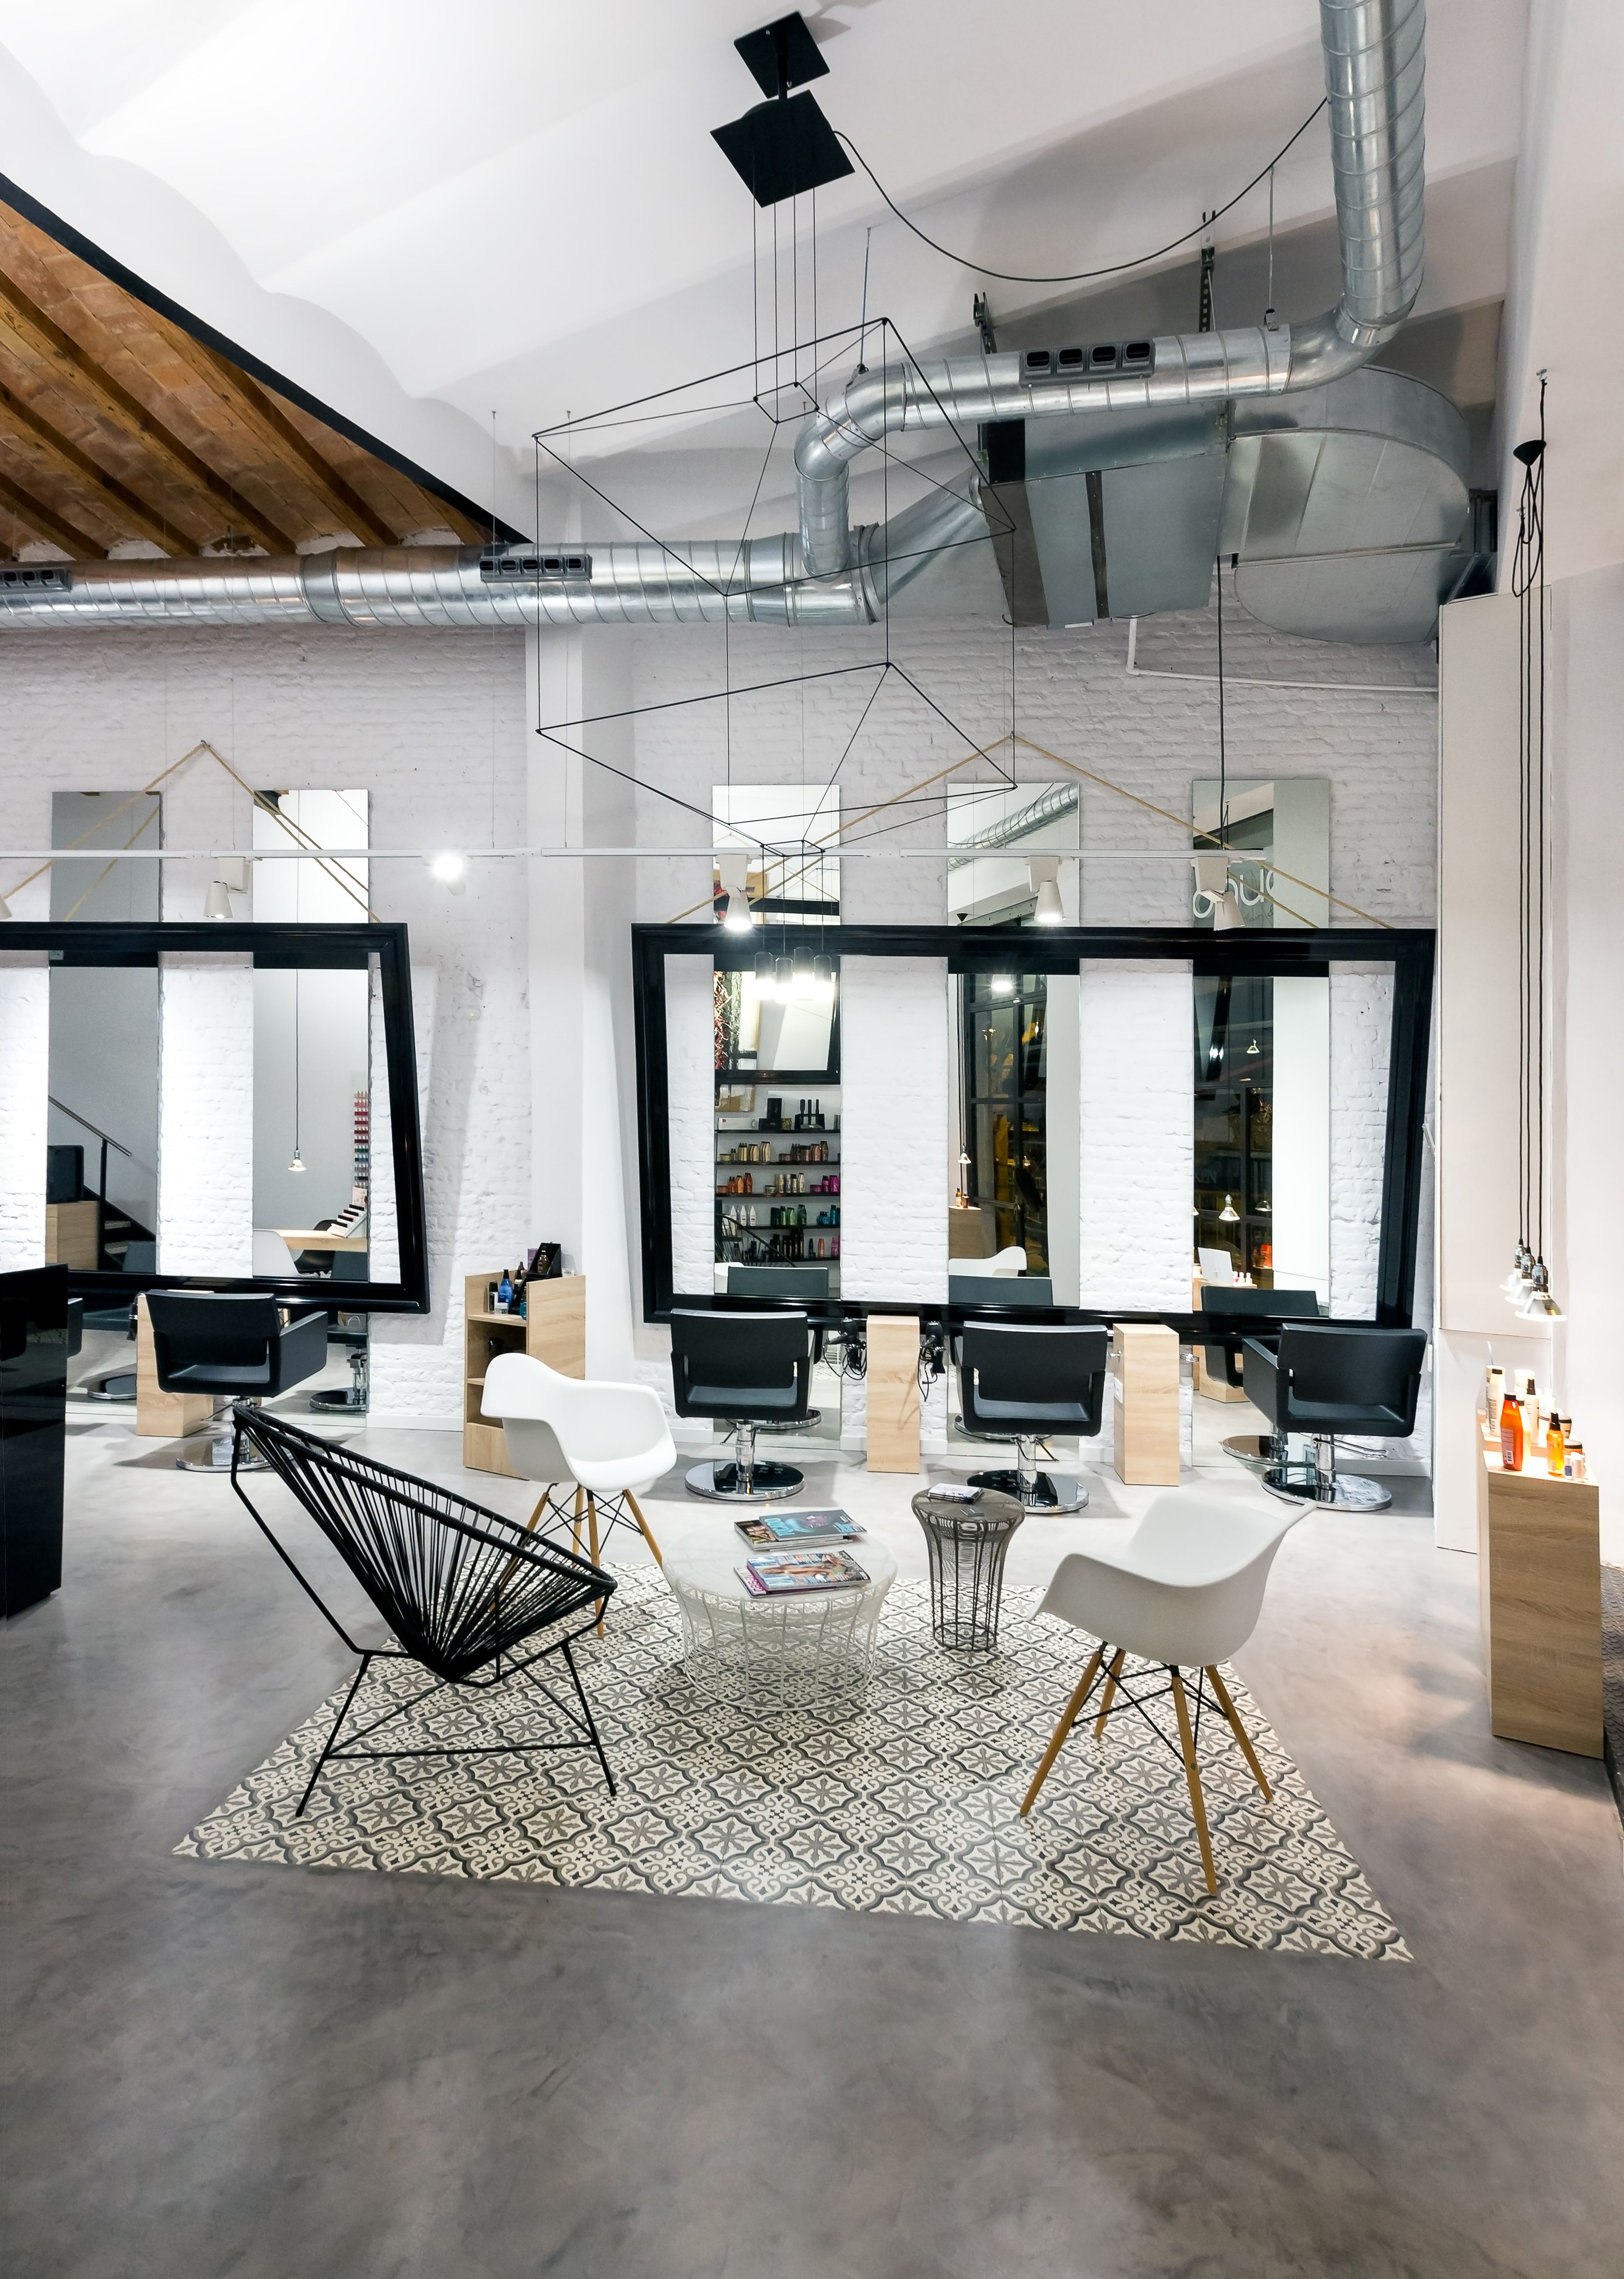 WIREFLOW Design Lights Up The Lounge At Noguera Hair U0026 Art Salon In  Barcelona. Part 57